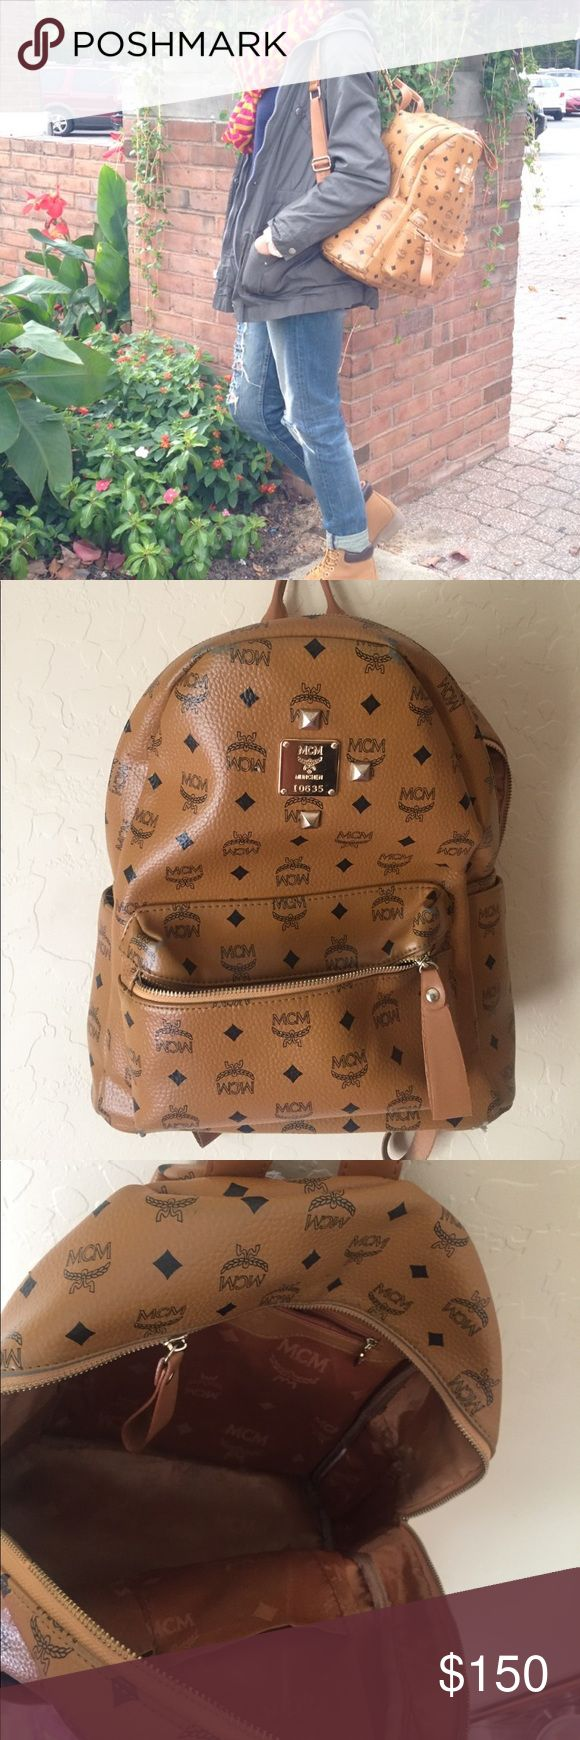 MCM backpack This is an Authentic MCM backpack. I got it 2 years ago and only used it twice. It's in really good shape and looks brand new. It's missing a stud and has a broken zipper that was damaged when I moved to my new home but both can easily be replaced . I'm asking for listed price but will be willing to go lower MCM Bags Backpacks